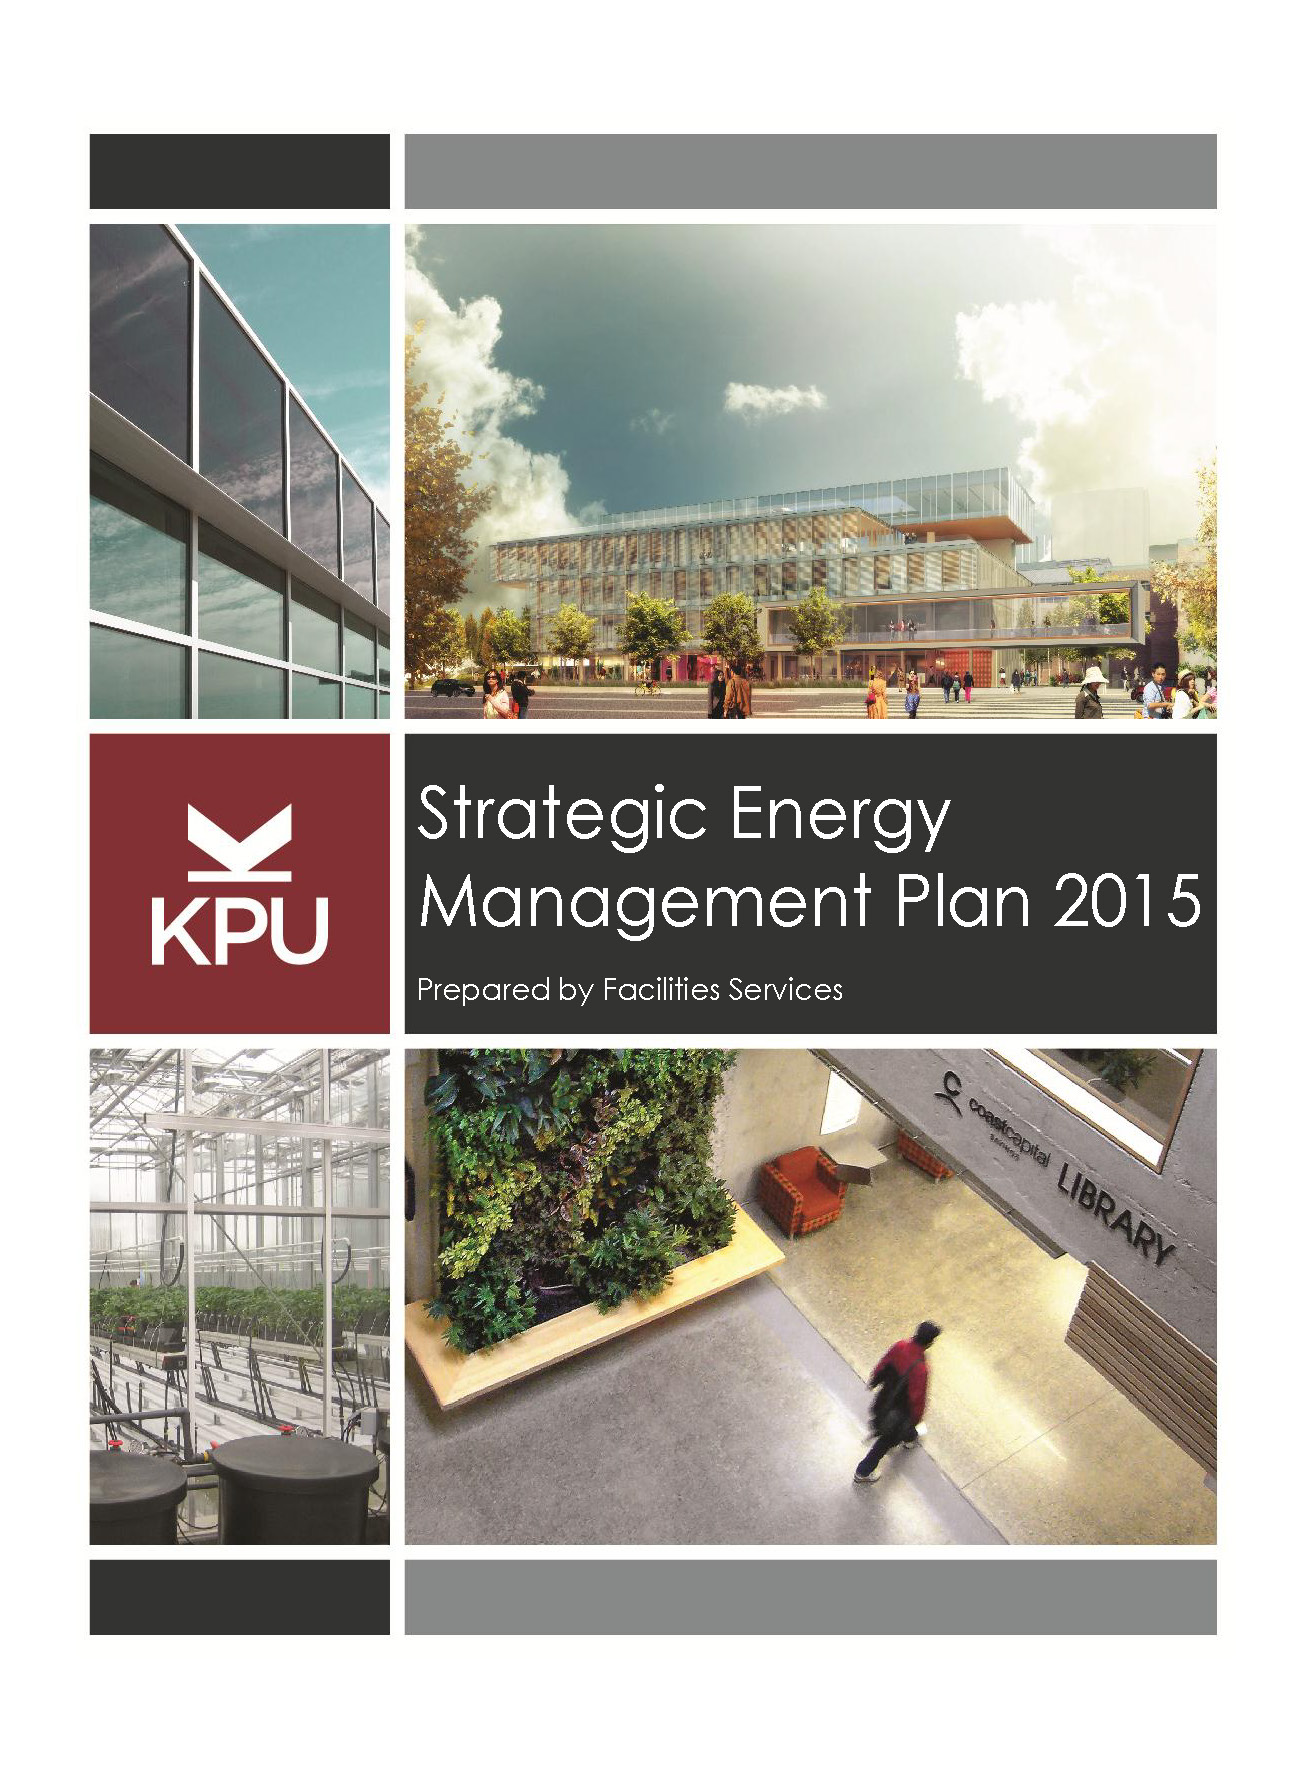 Strategic Energy Management Plan 2015